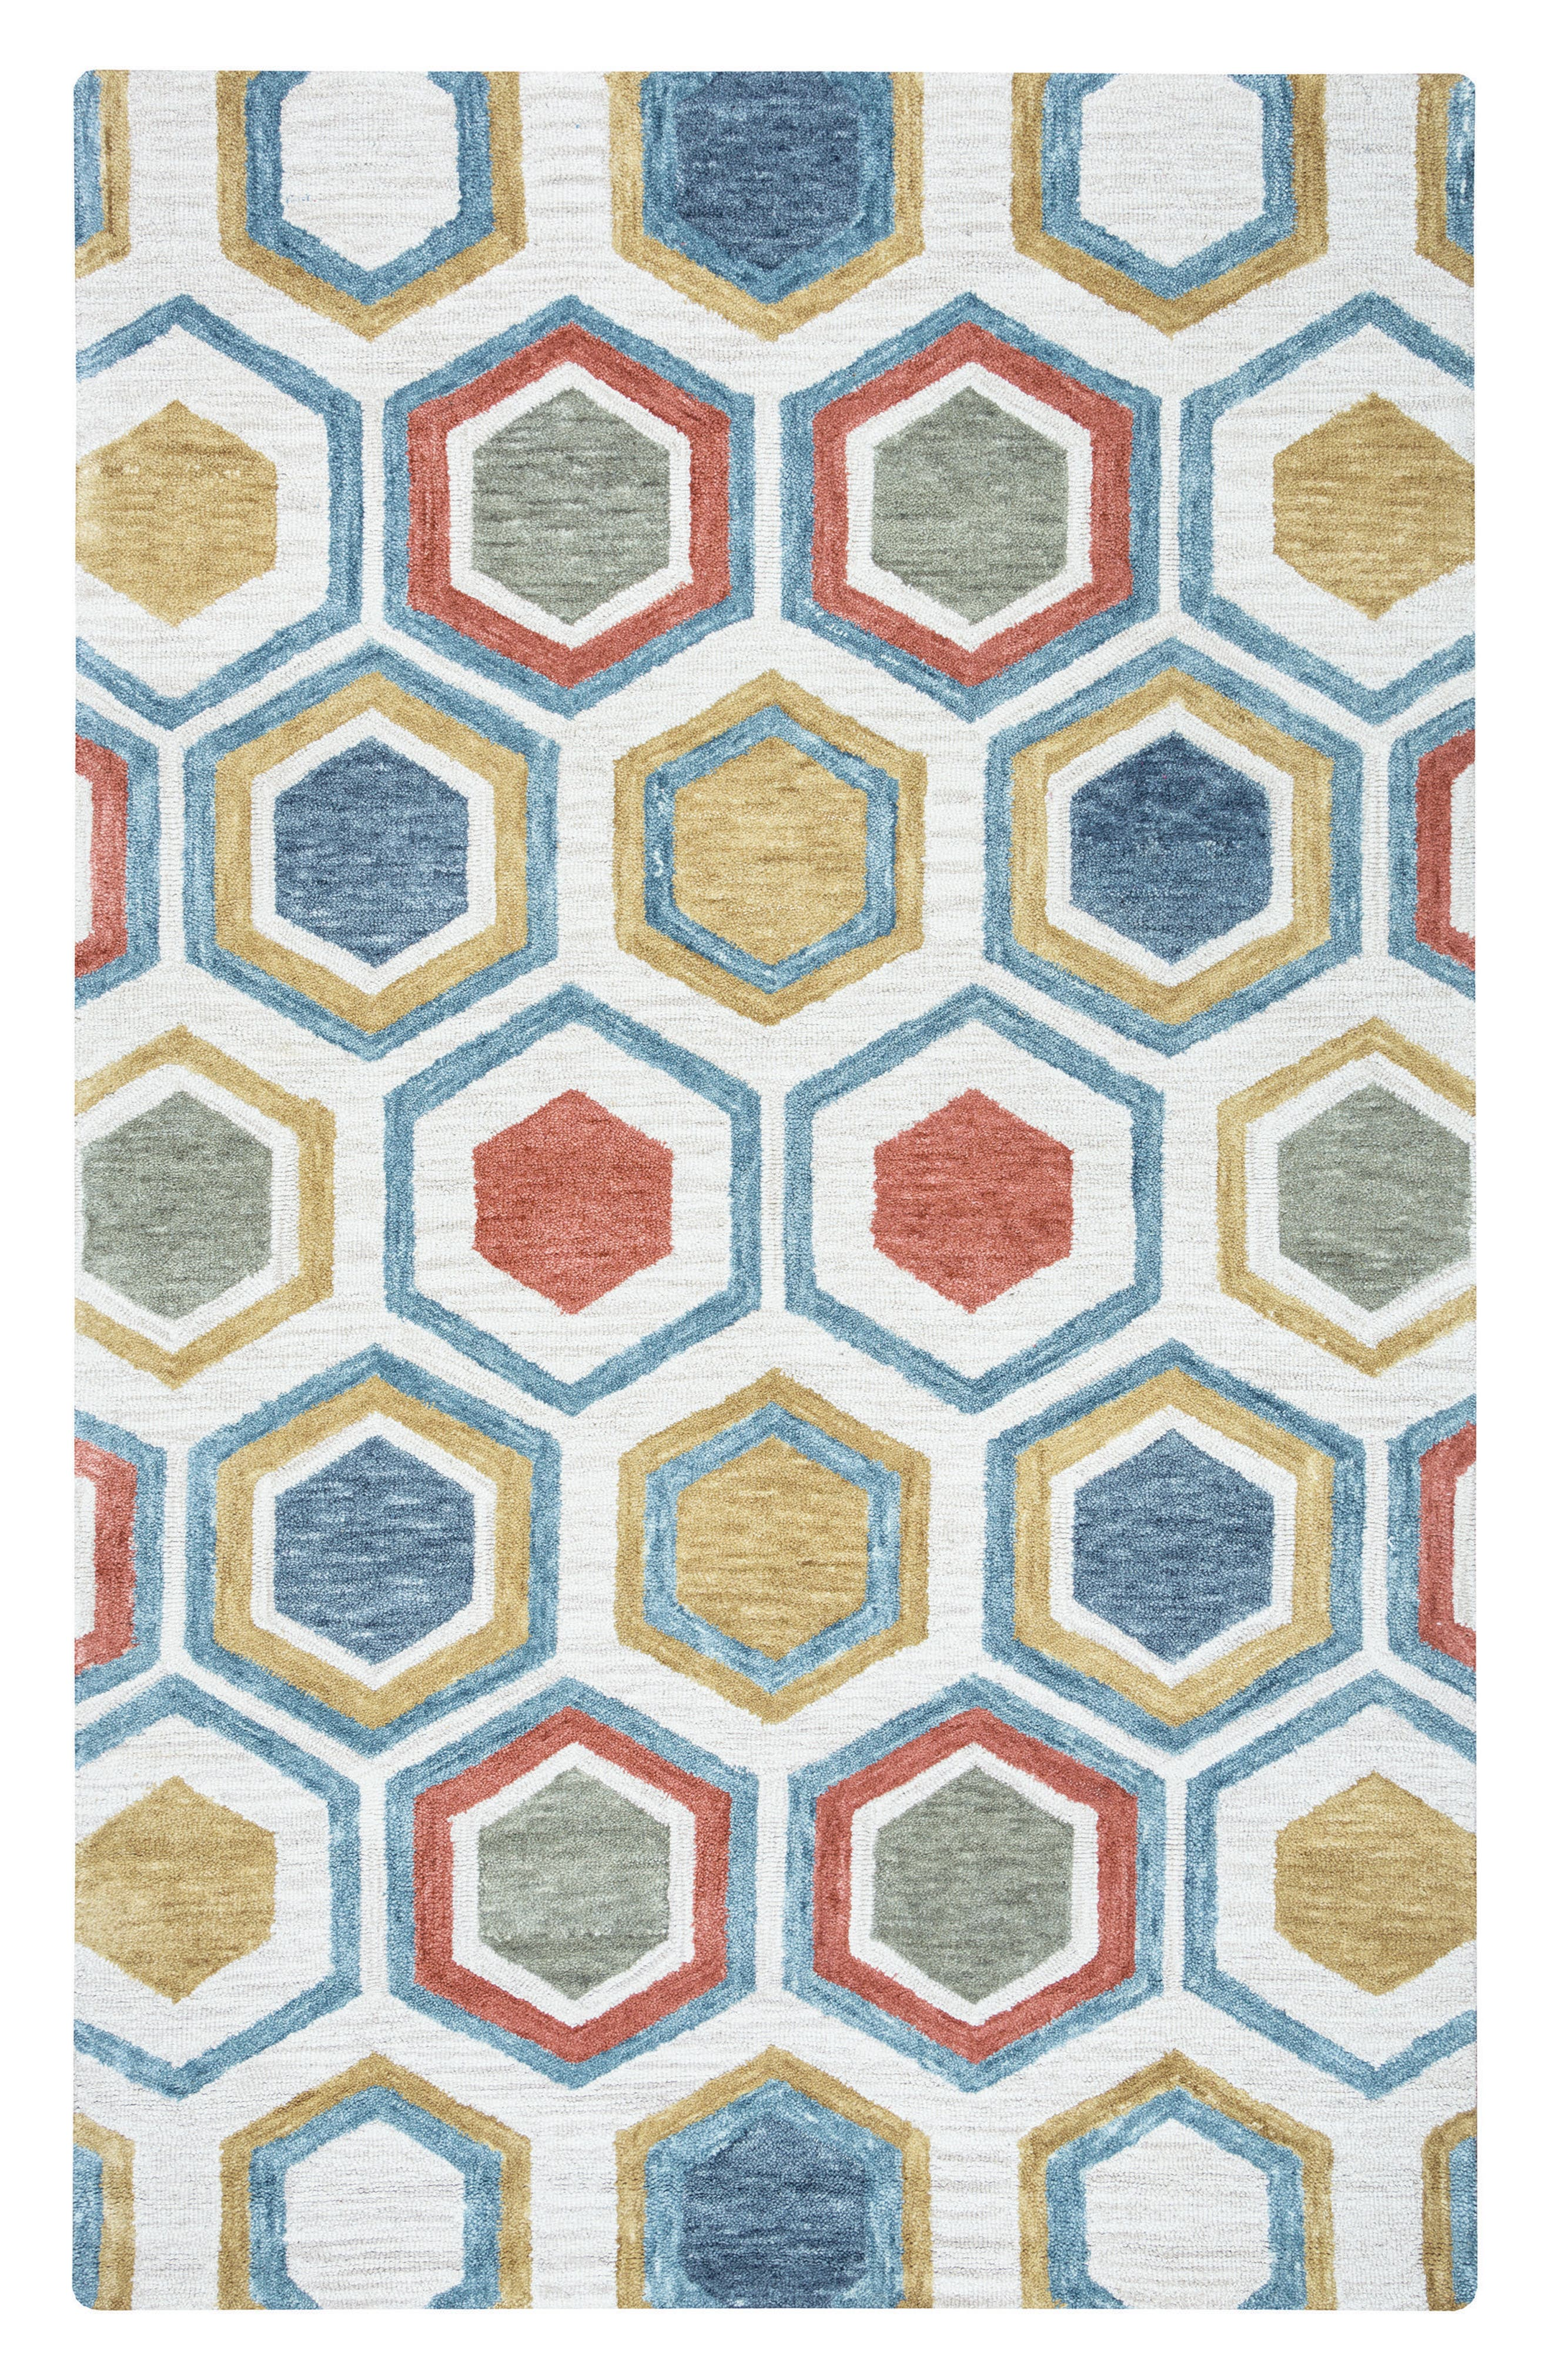 'Lancaster Geometric' Hand Tufted Wool Area Rug,                         Main,                         color, 020